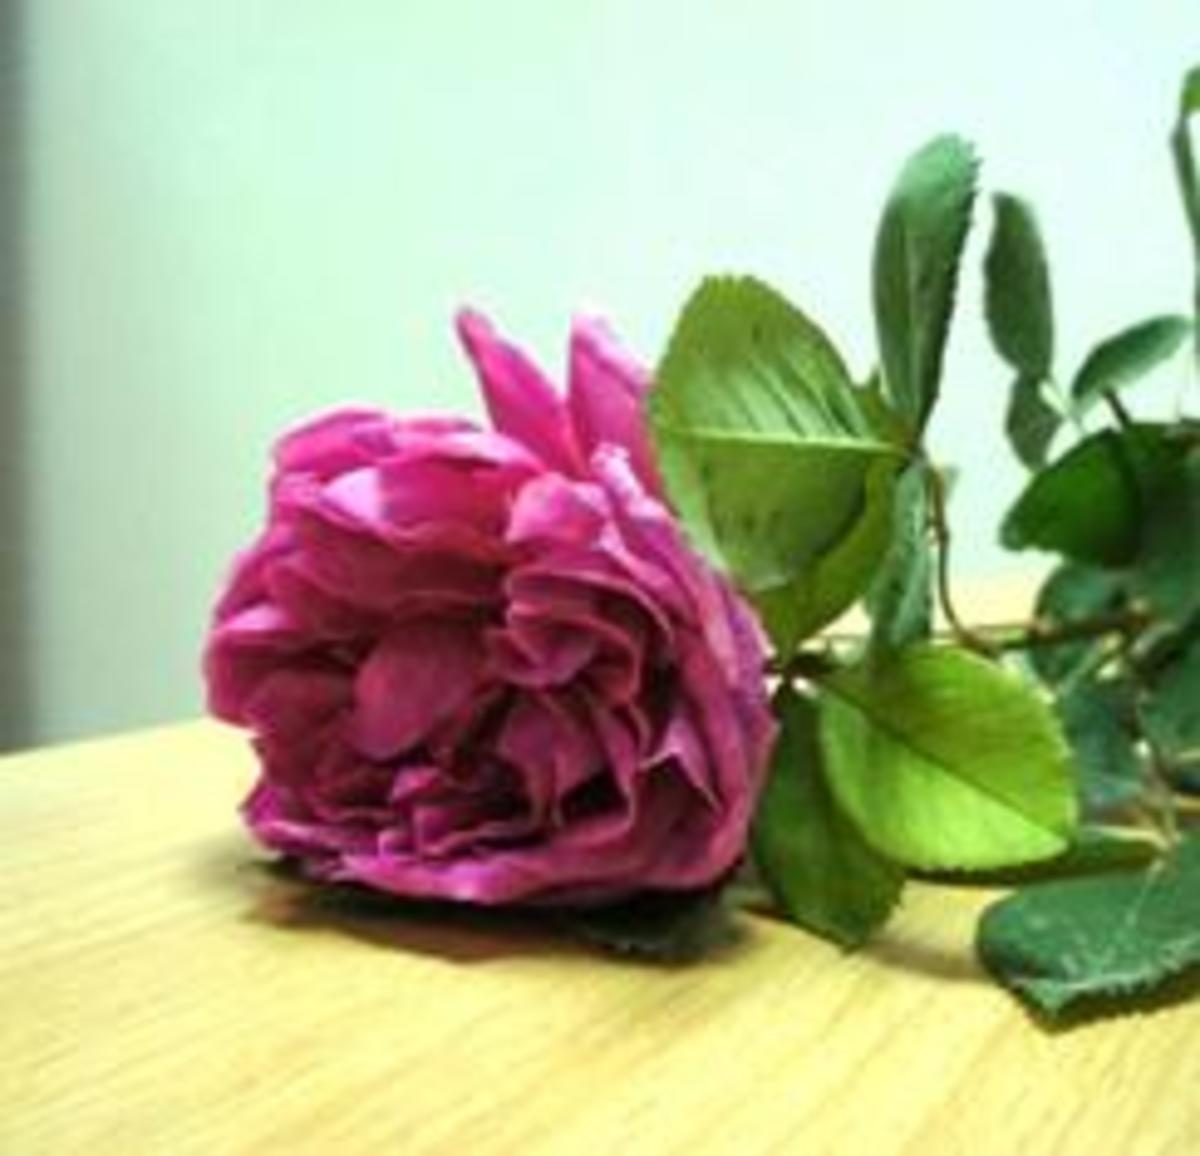 How to Grow Roses from a Stem Cuttings